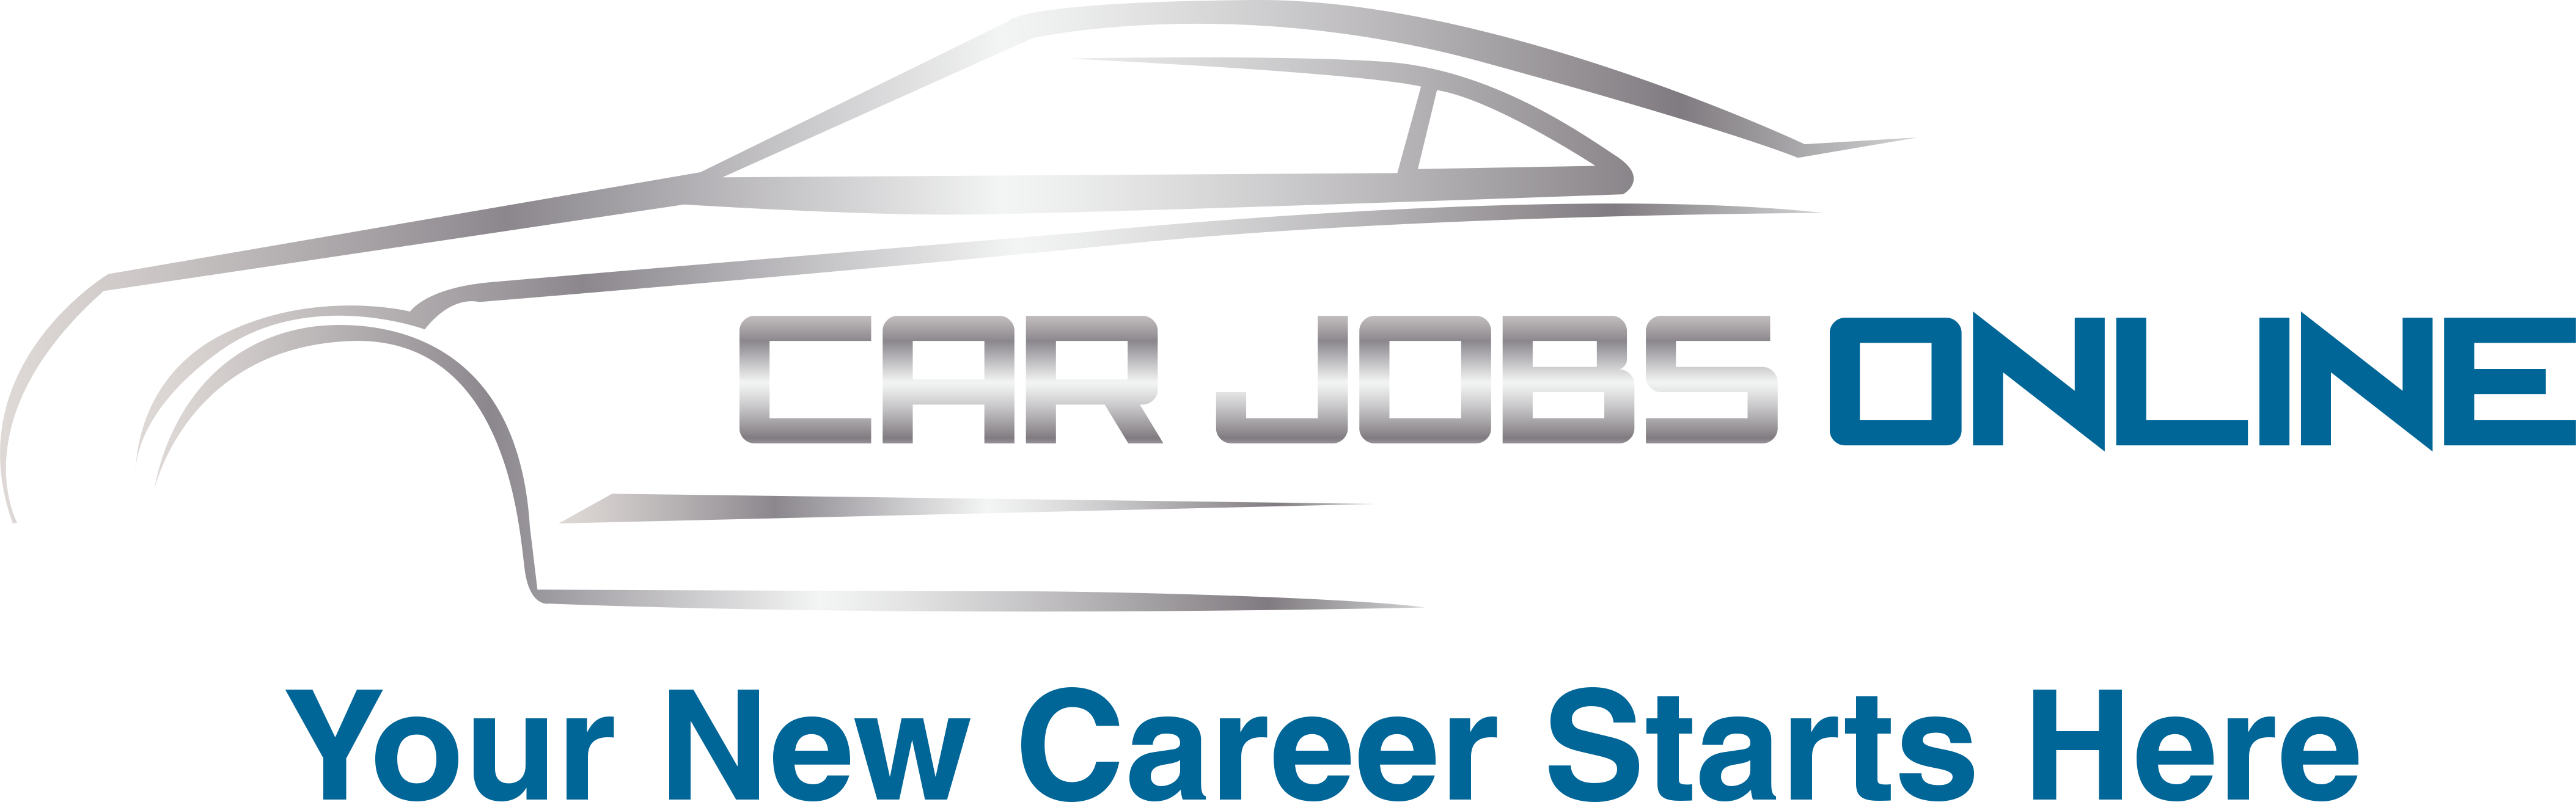 Car Jobs line Finding a Career in the Auto Industry